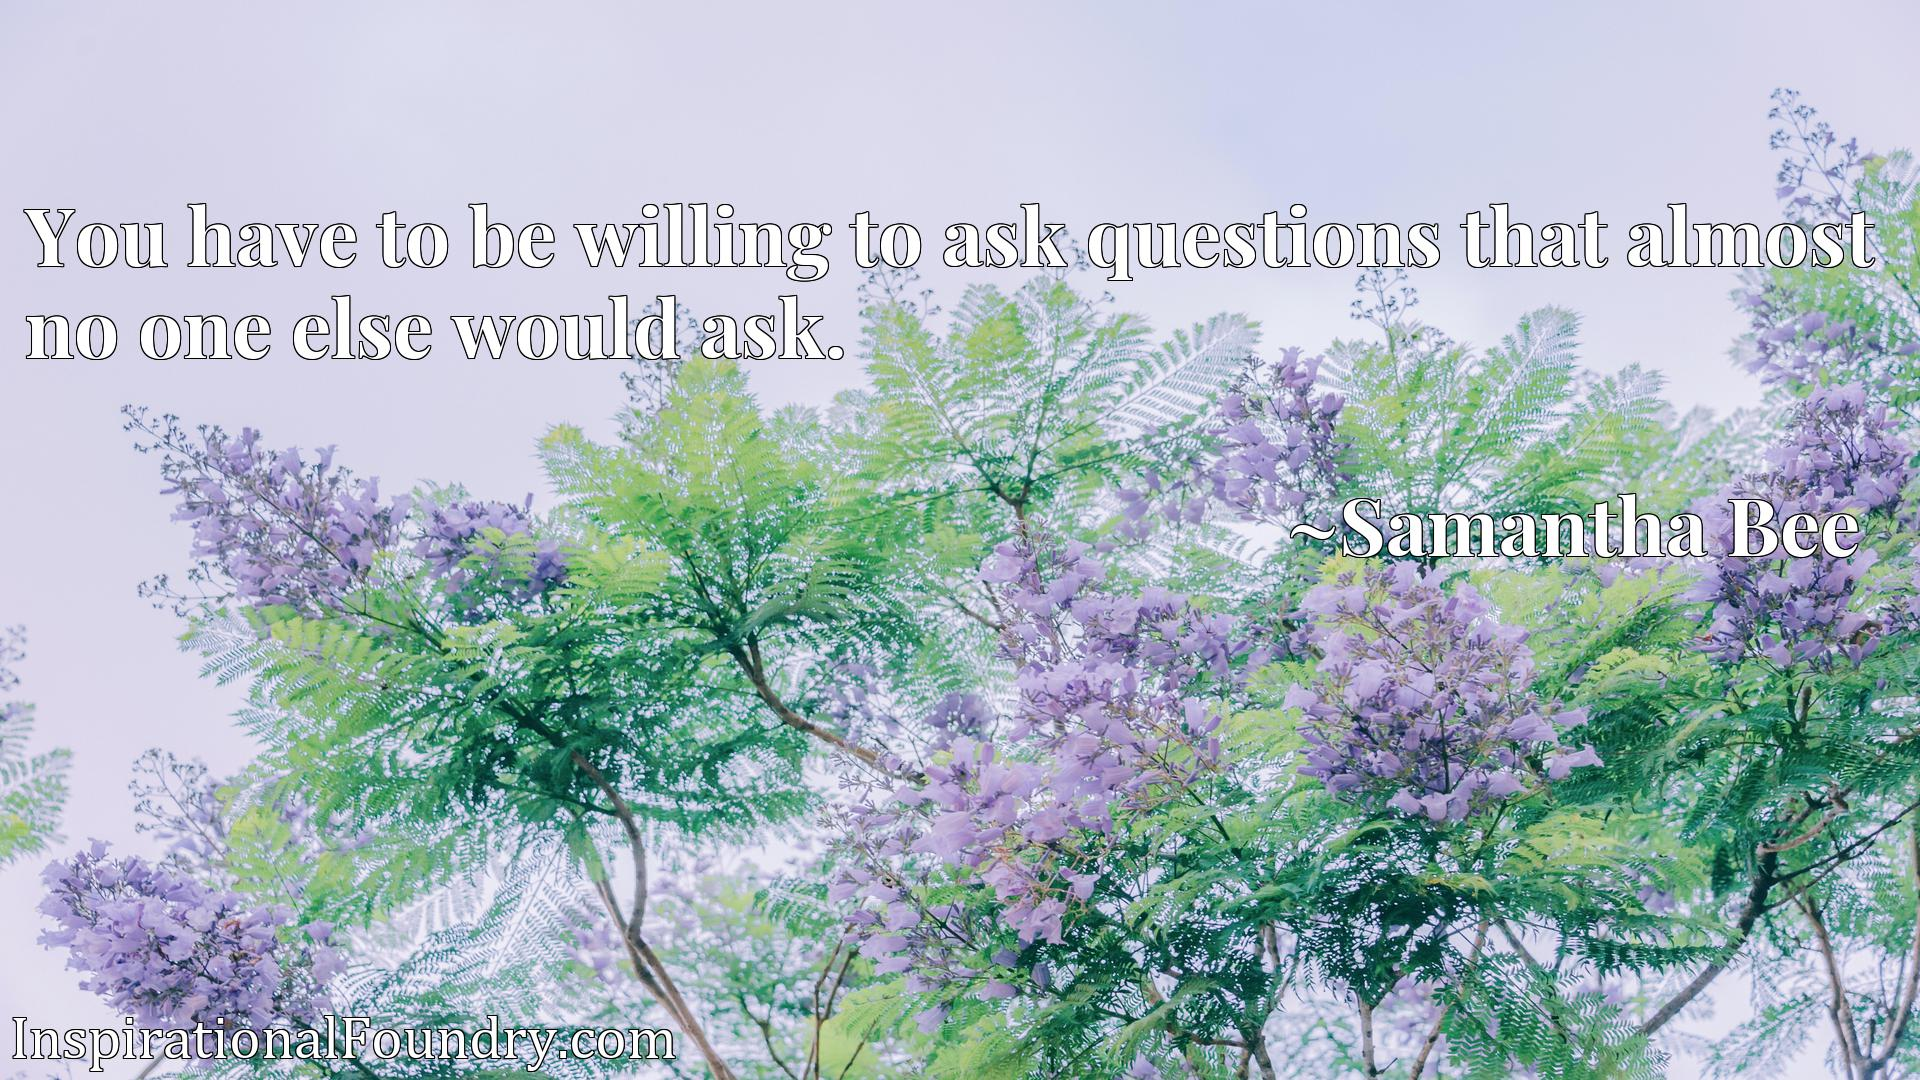 You have to be willing to ask questions that almost no one else would ask.